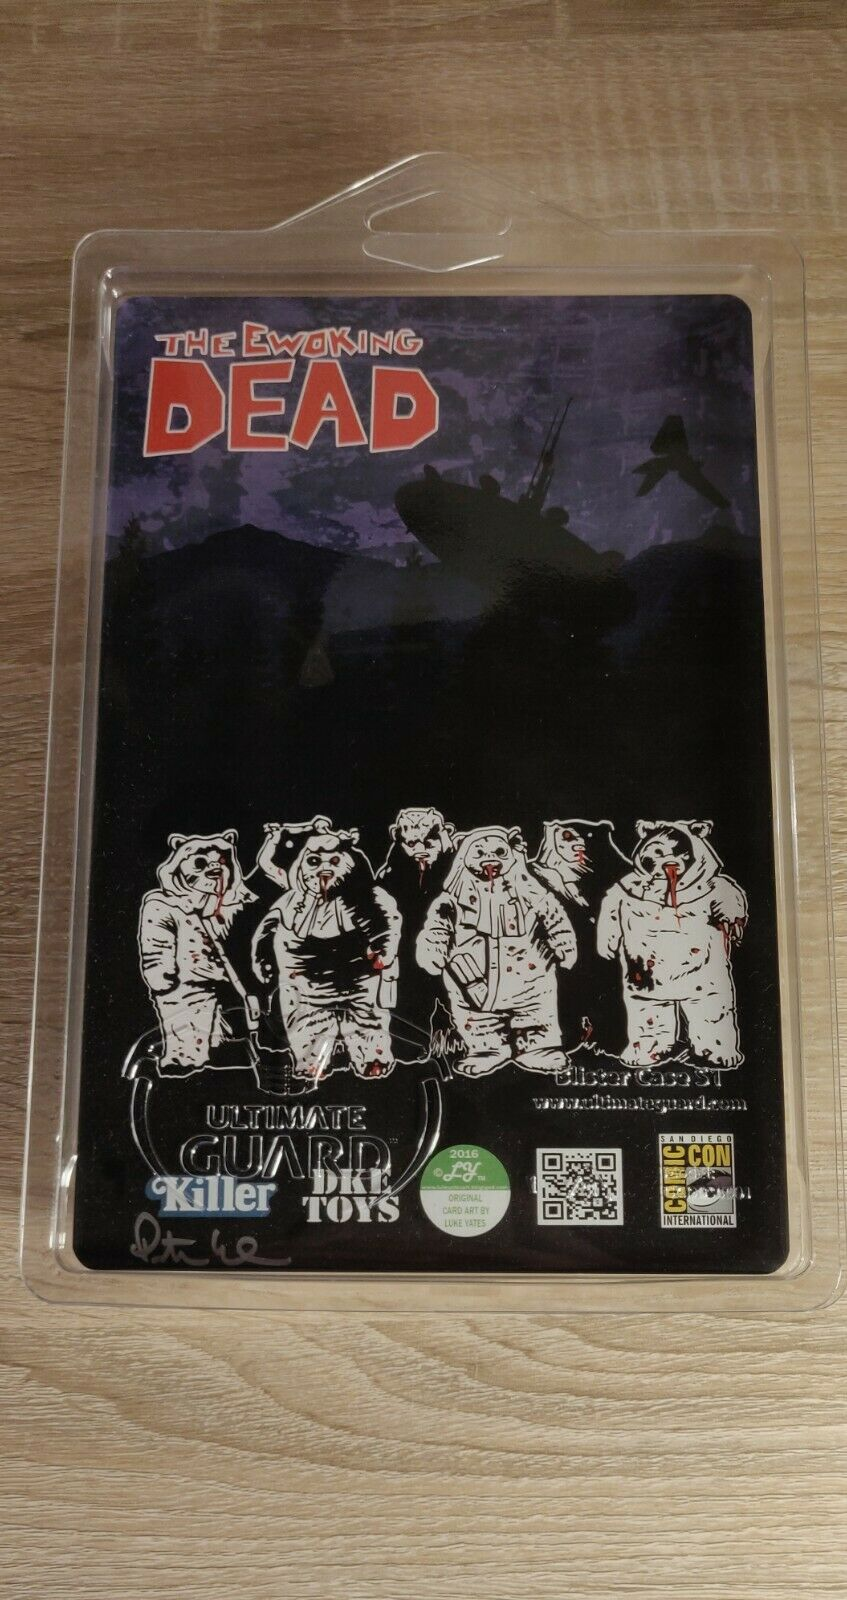 SIGNED SDCC SDCC SDCC 2016 Ewoking Dead Star Wars Action Figure Killer Bootlegs DKE TOYS 9cfc58